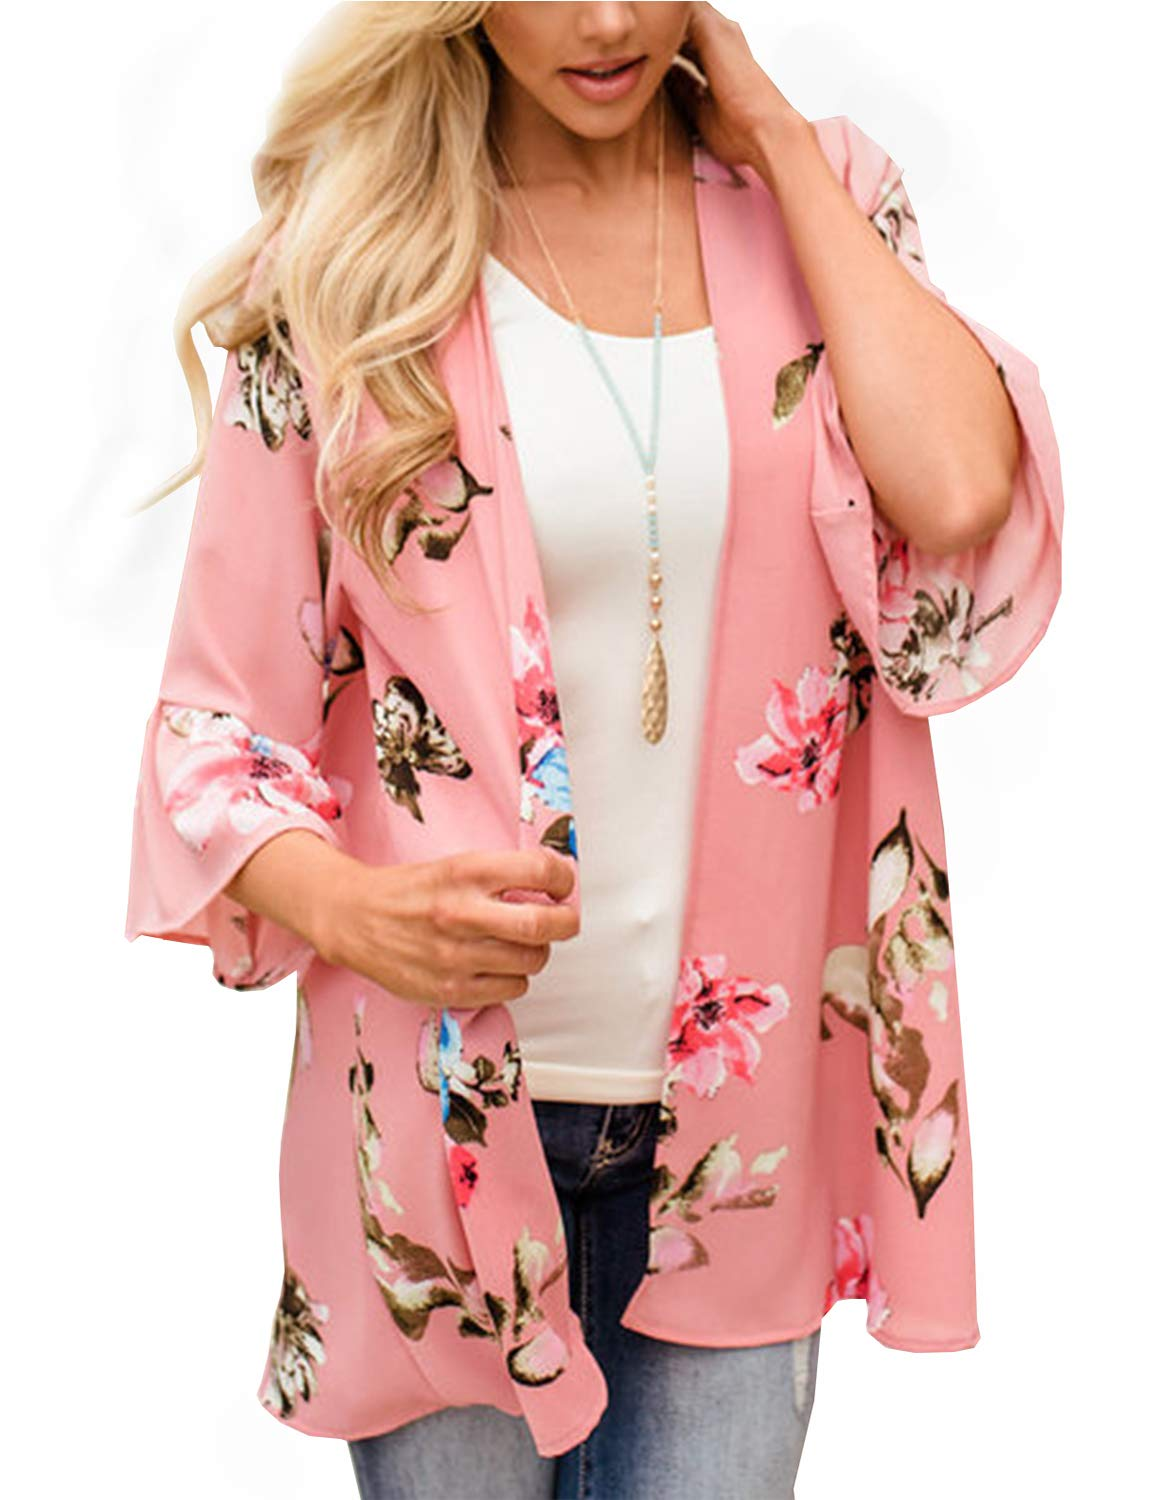 BB&KK 2018 New Floral Chiffon Kimono Open Cover Ups for Swimwear Women Boho Style Sheer Jackets for Women Shawls Street Wear Resort Wear (Pink Large)